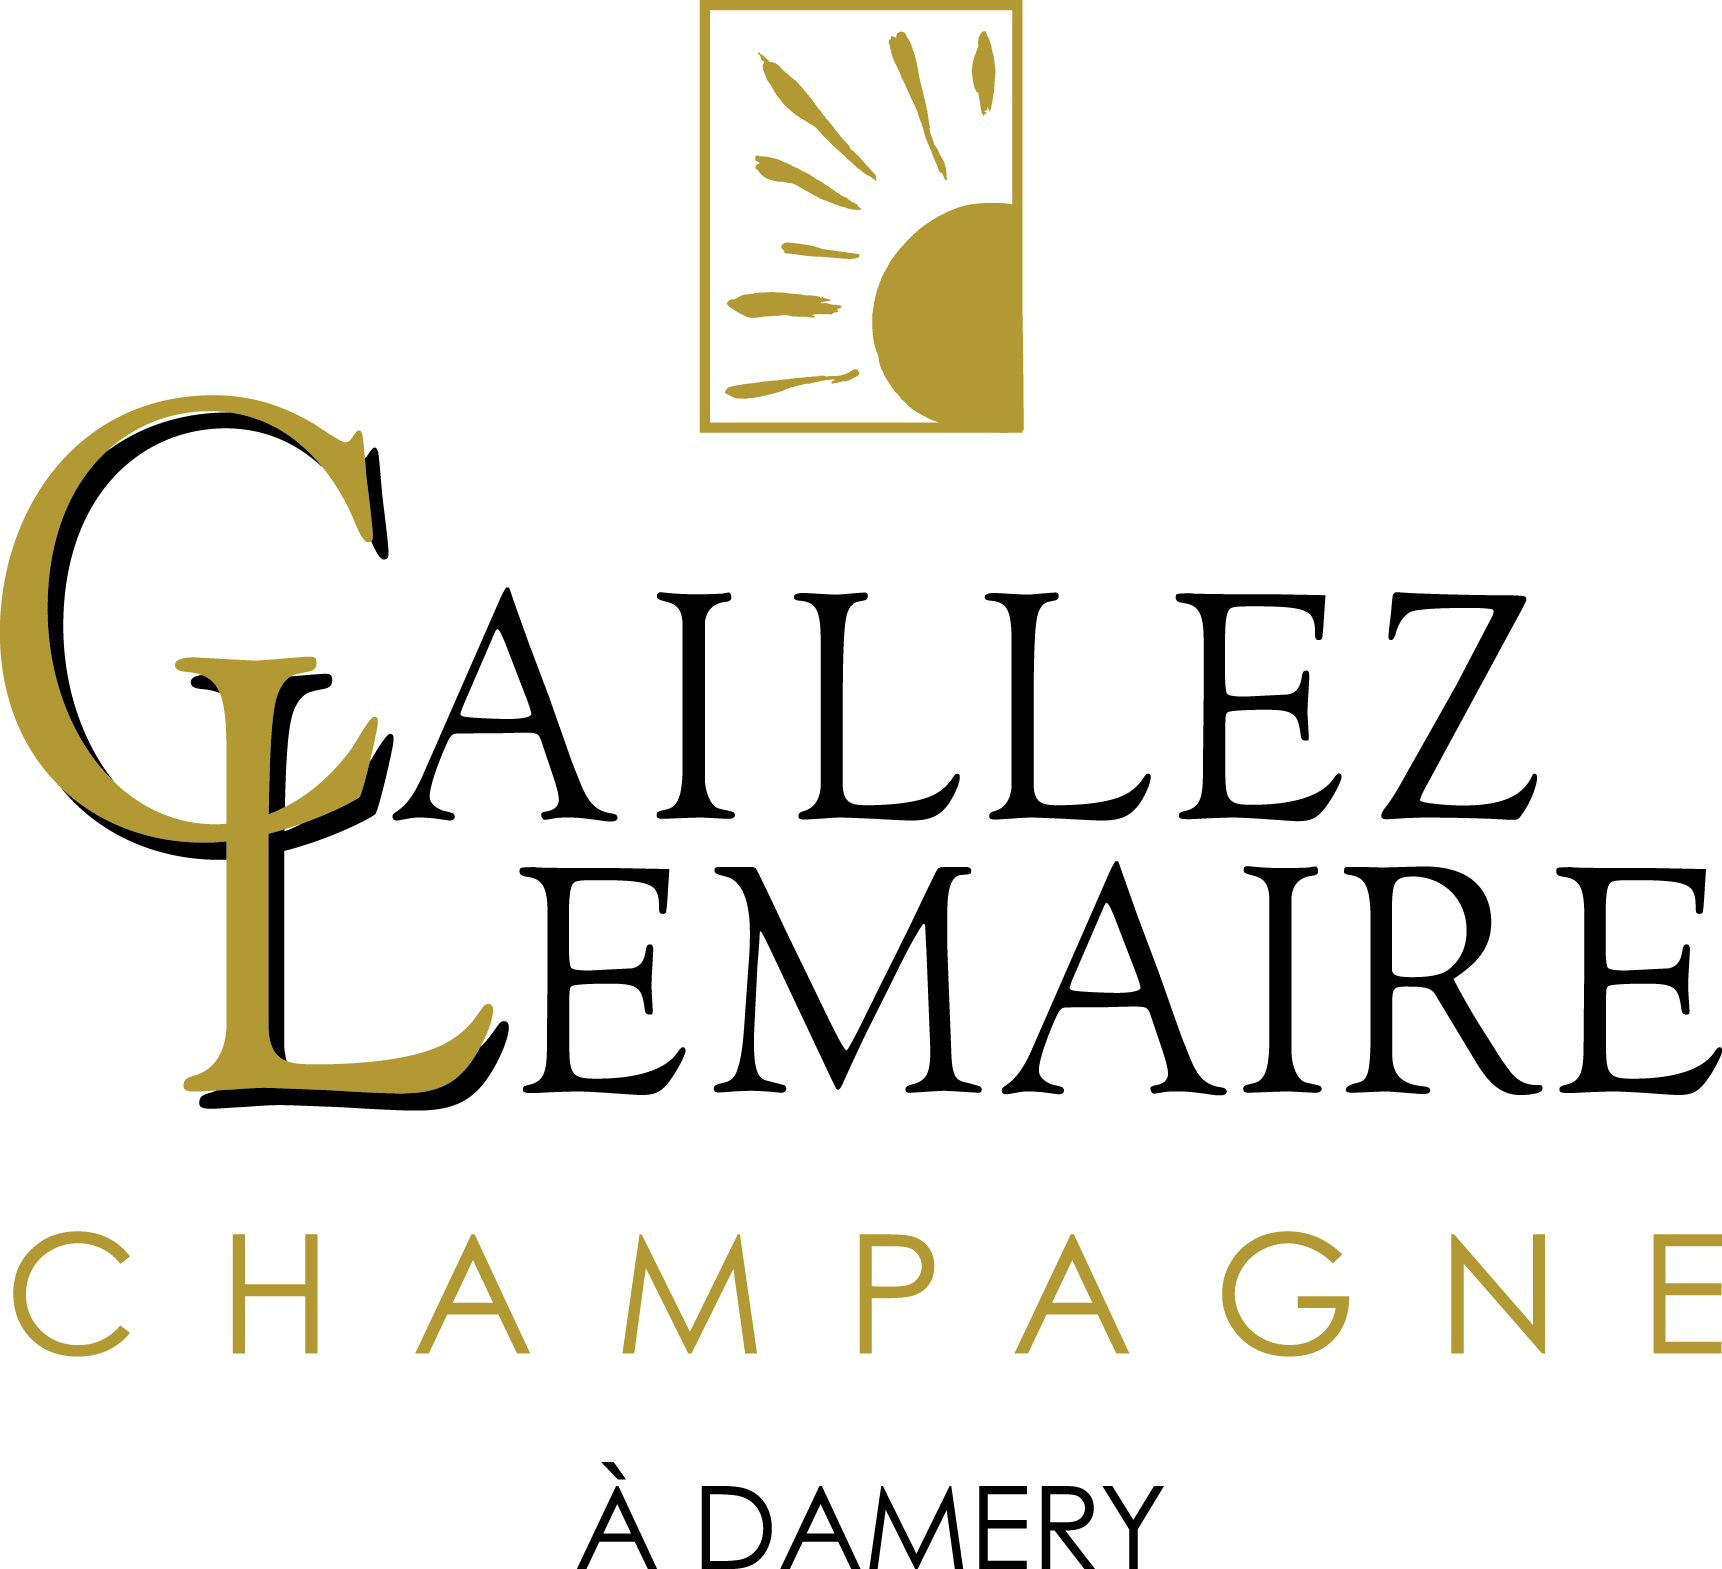 Champagne Caillez-Lemaire